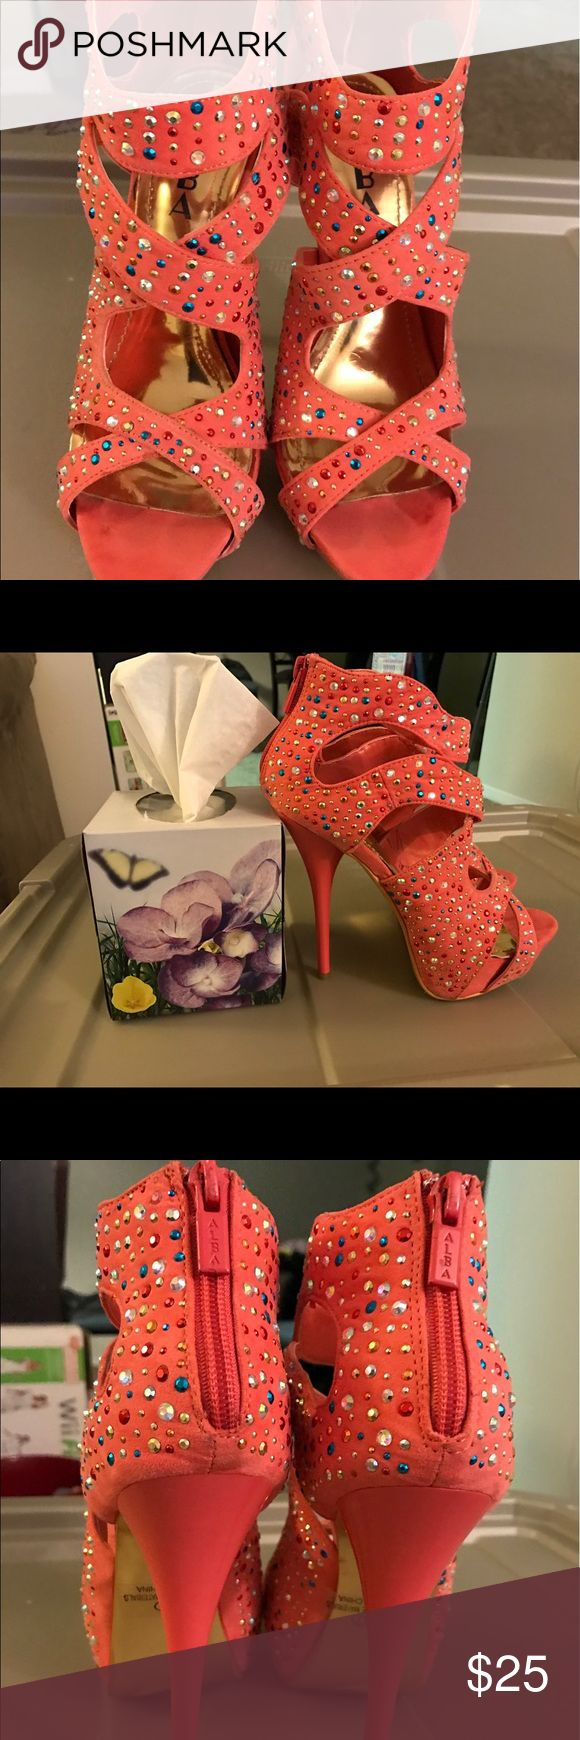 BEAUTIFUL CORAL HEELS WITH COLORFUL RHINESTONES BRAND NEW NO FLAWS WORN TWICE Alba Shoes Heels